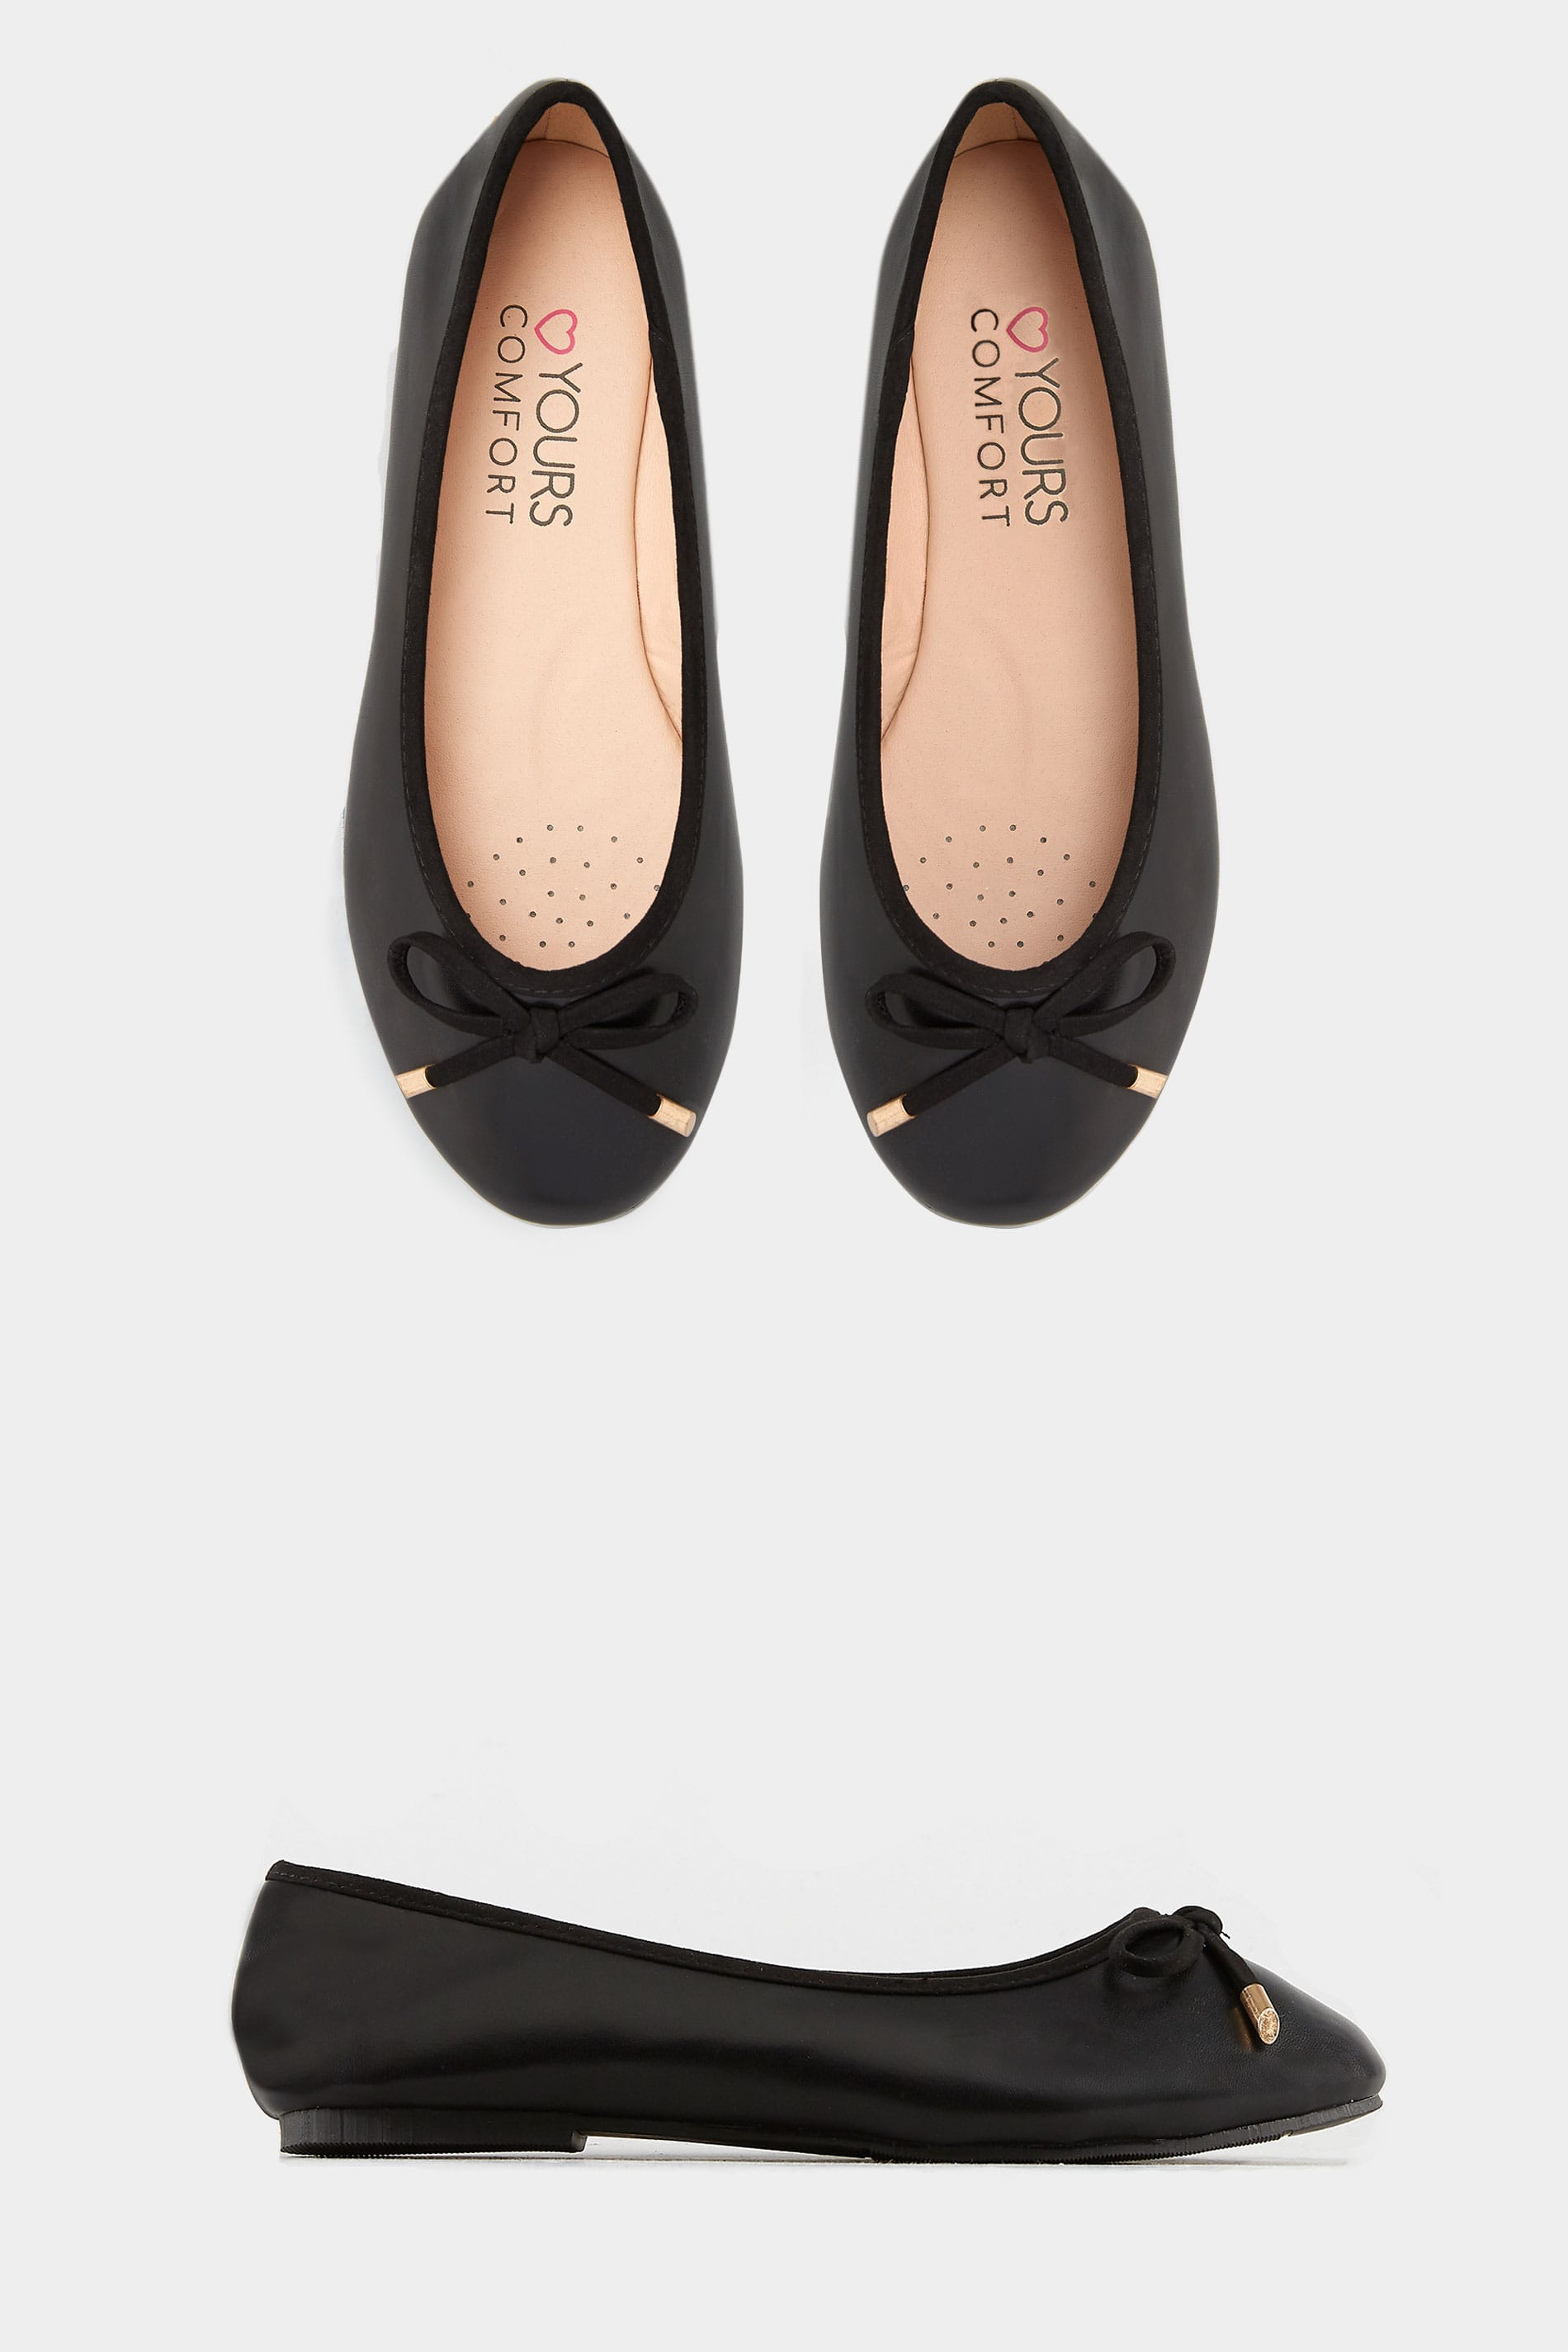 Black Ballerina Pumps In Extra Wide Fit